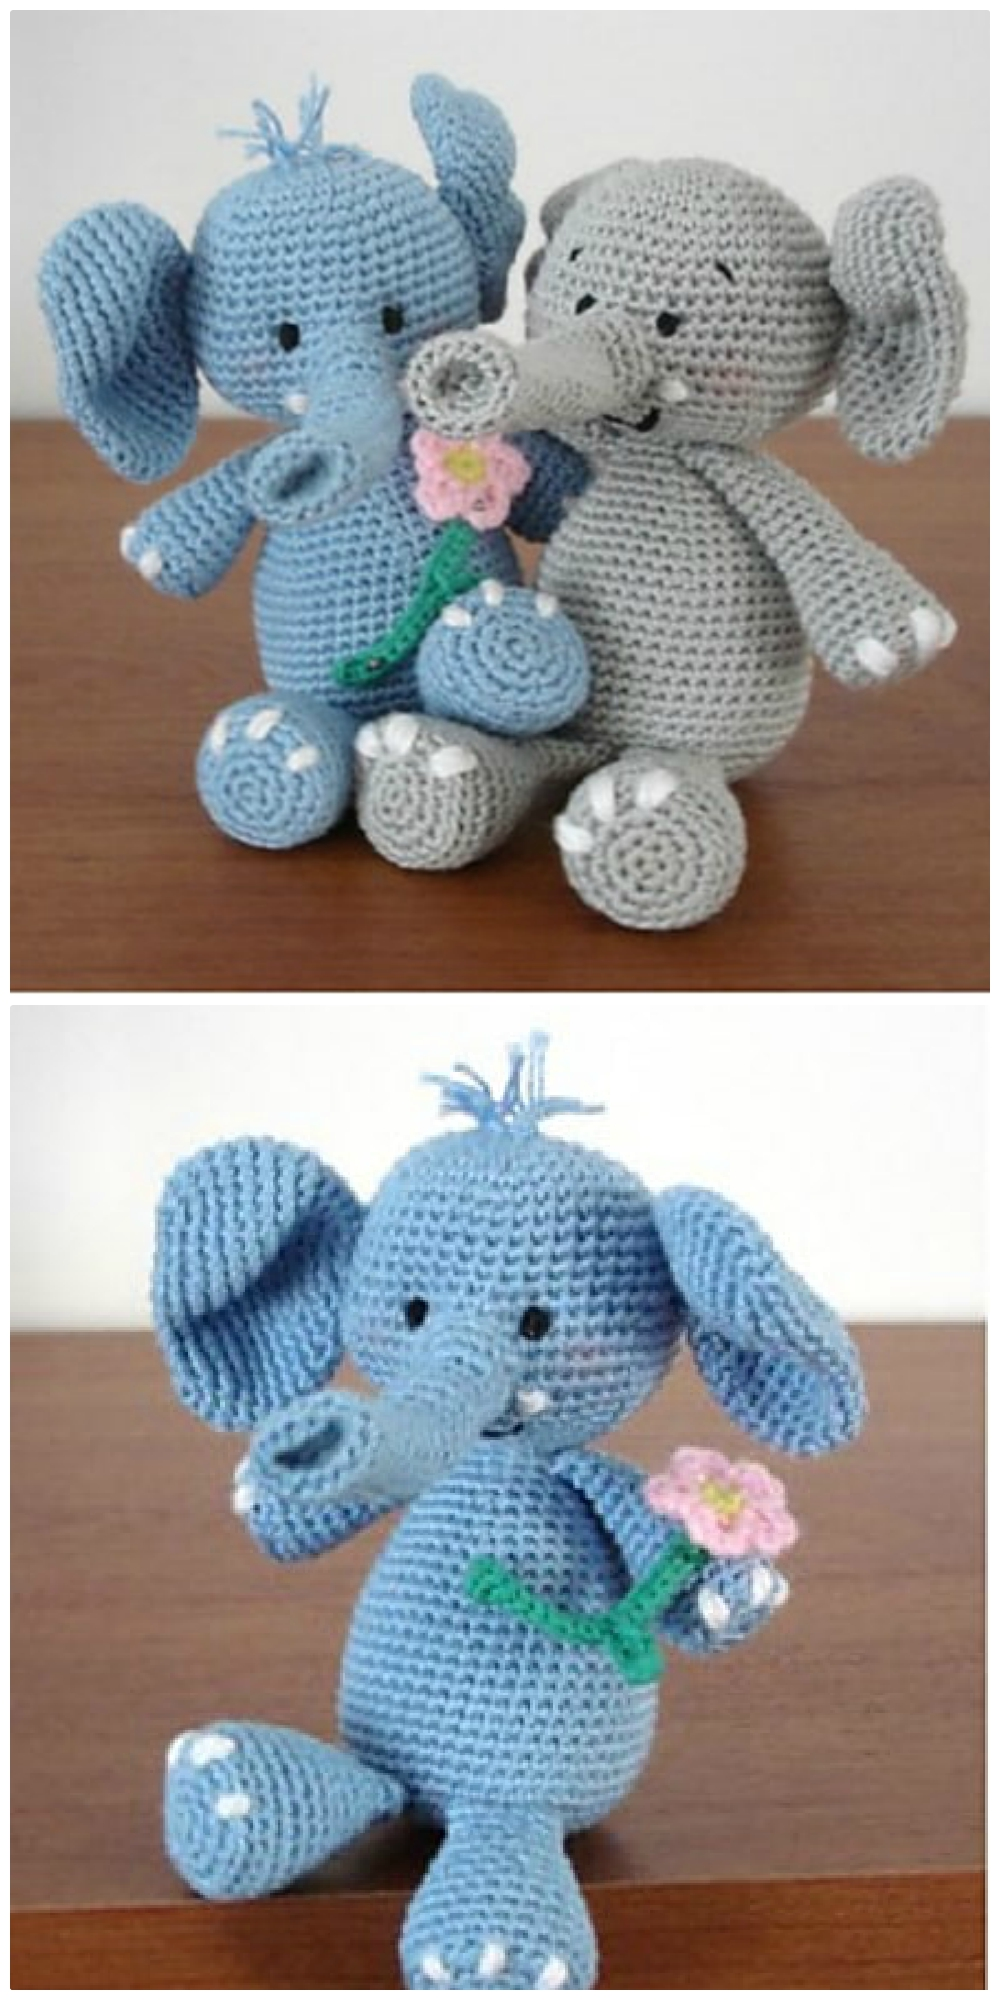 crochet elephant amigurumi - YouTube | 2000x1000